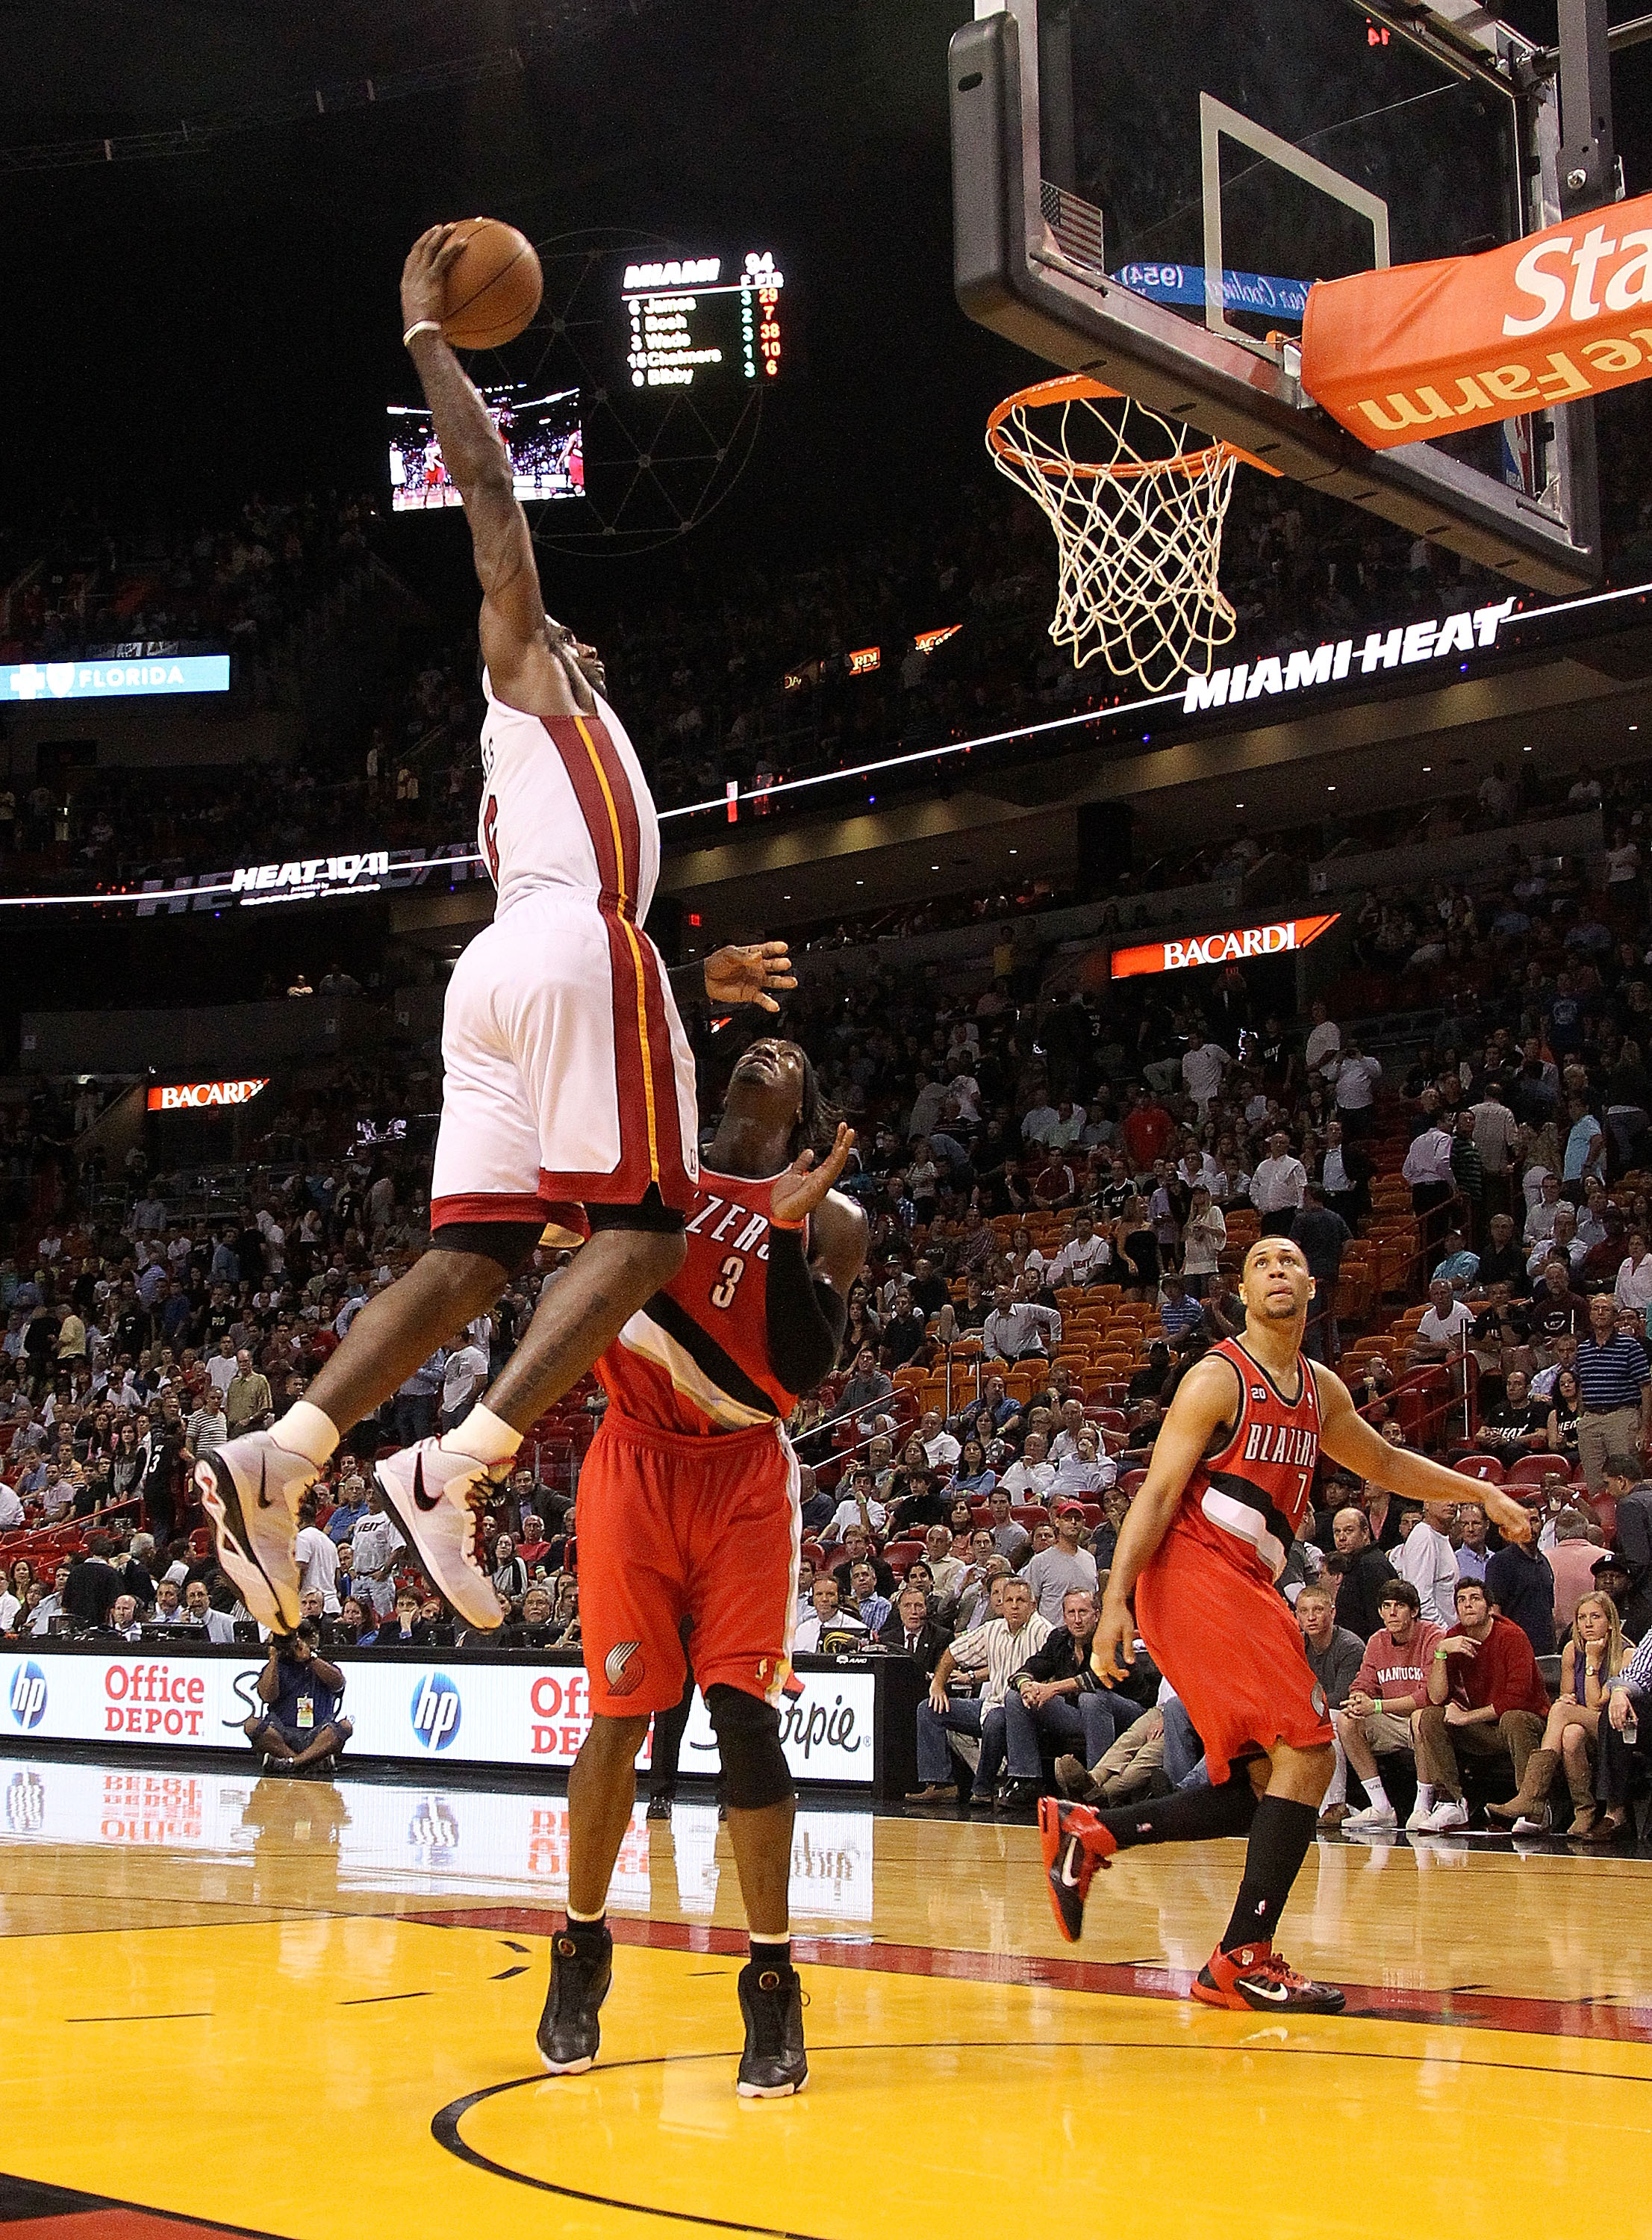 MIAMI, FL - MARCH 08:  LeBron James #6 of the Miami Heat dunks over Gerald Wallace #3 of the Portland Trail Blazers during a game at American Airlines Arena on March 8, 2011 in Miami, Florida. NOTE TO USER: User expressly acknowledges and agrees that, by